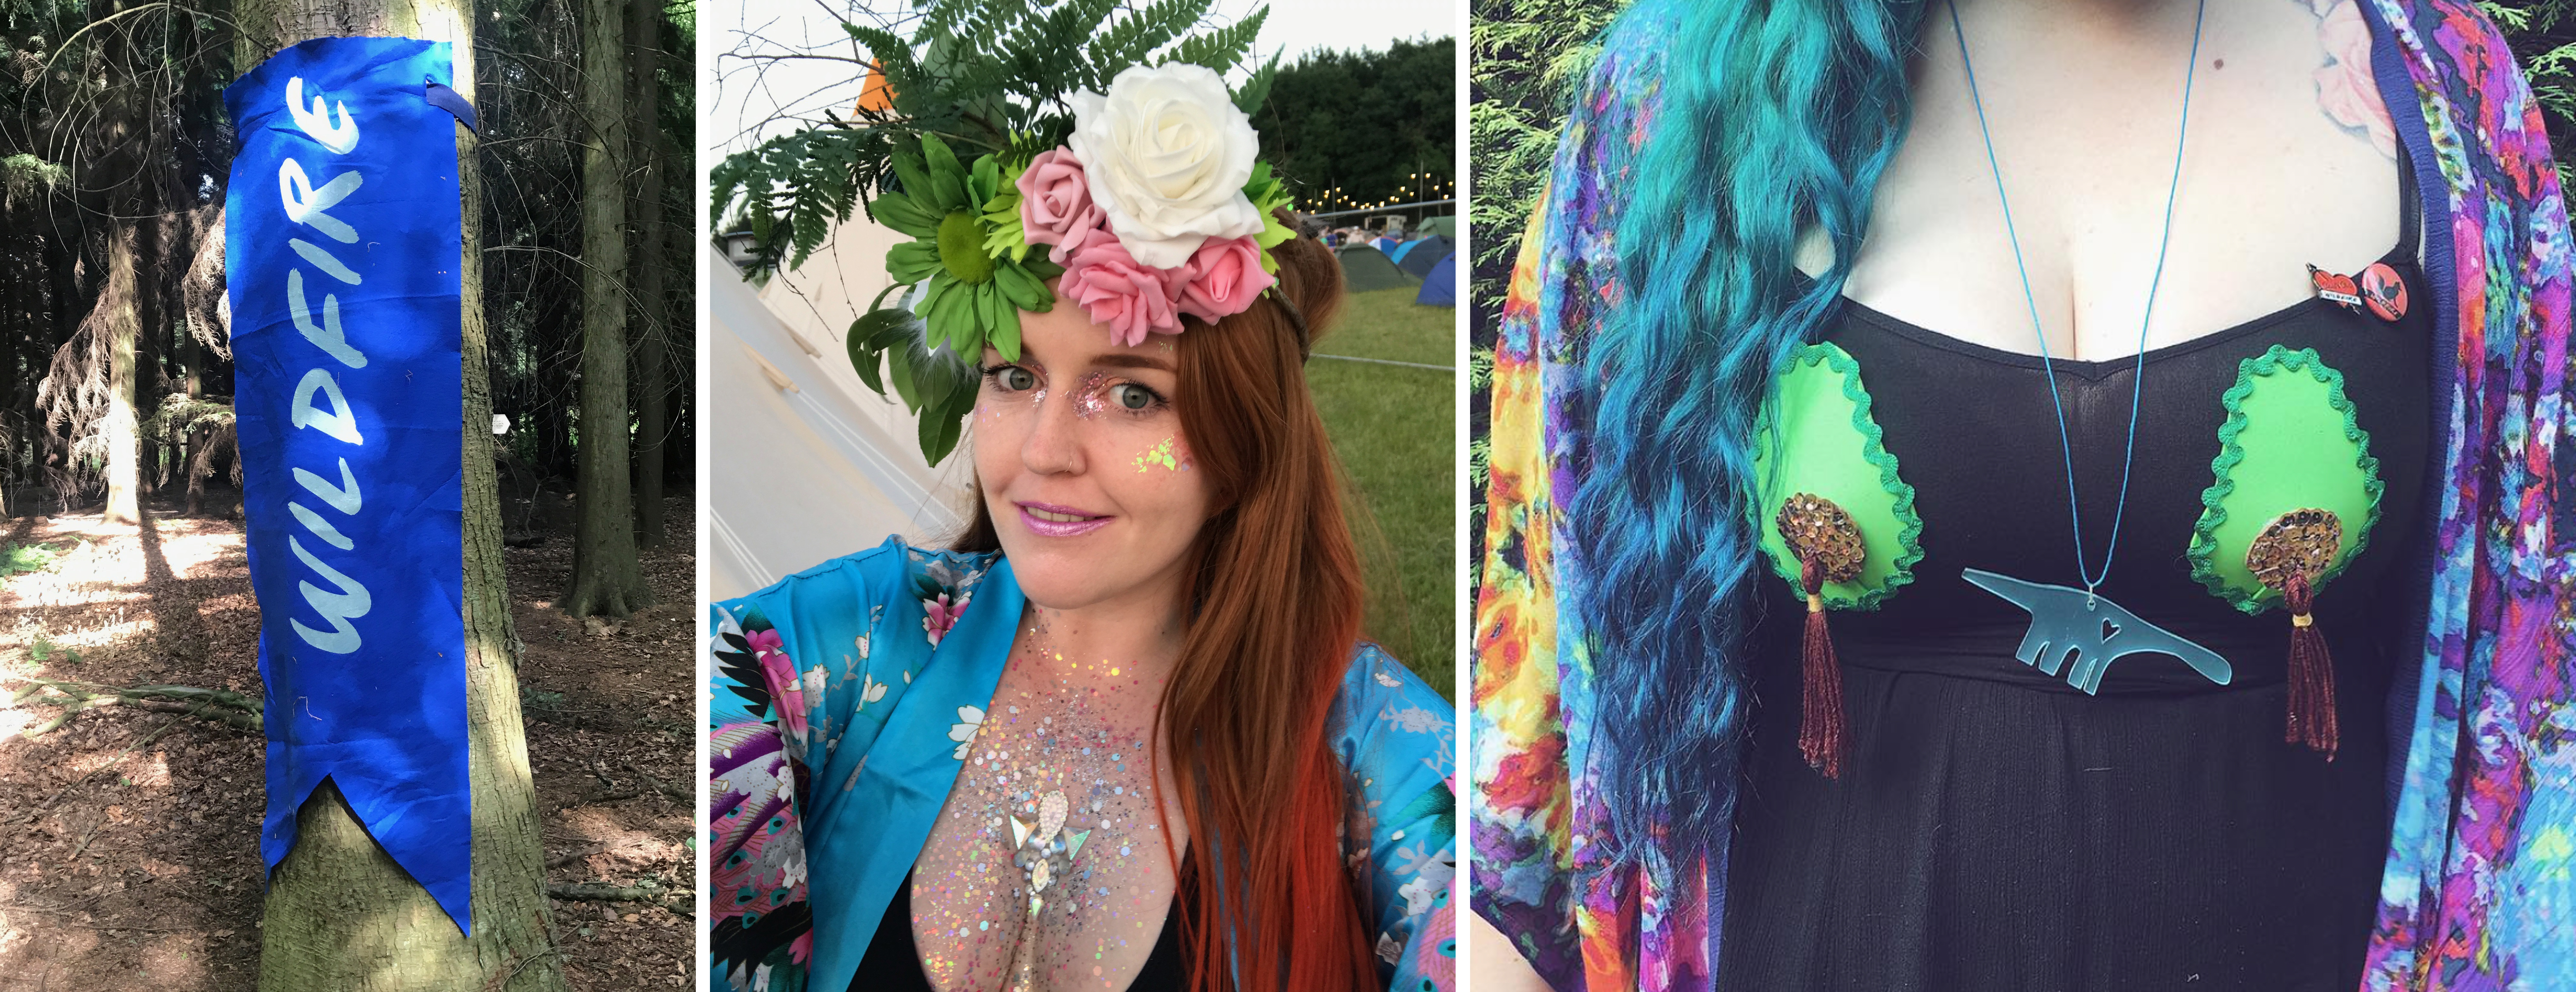 A wildfire flag, me in my natural headpiece, and Luisa's avocado nipple tassels and dinosaur acrylic necklace